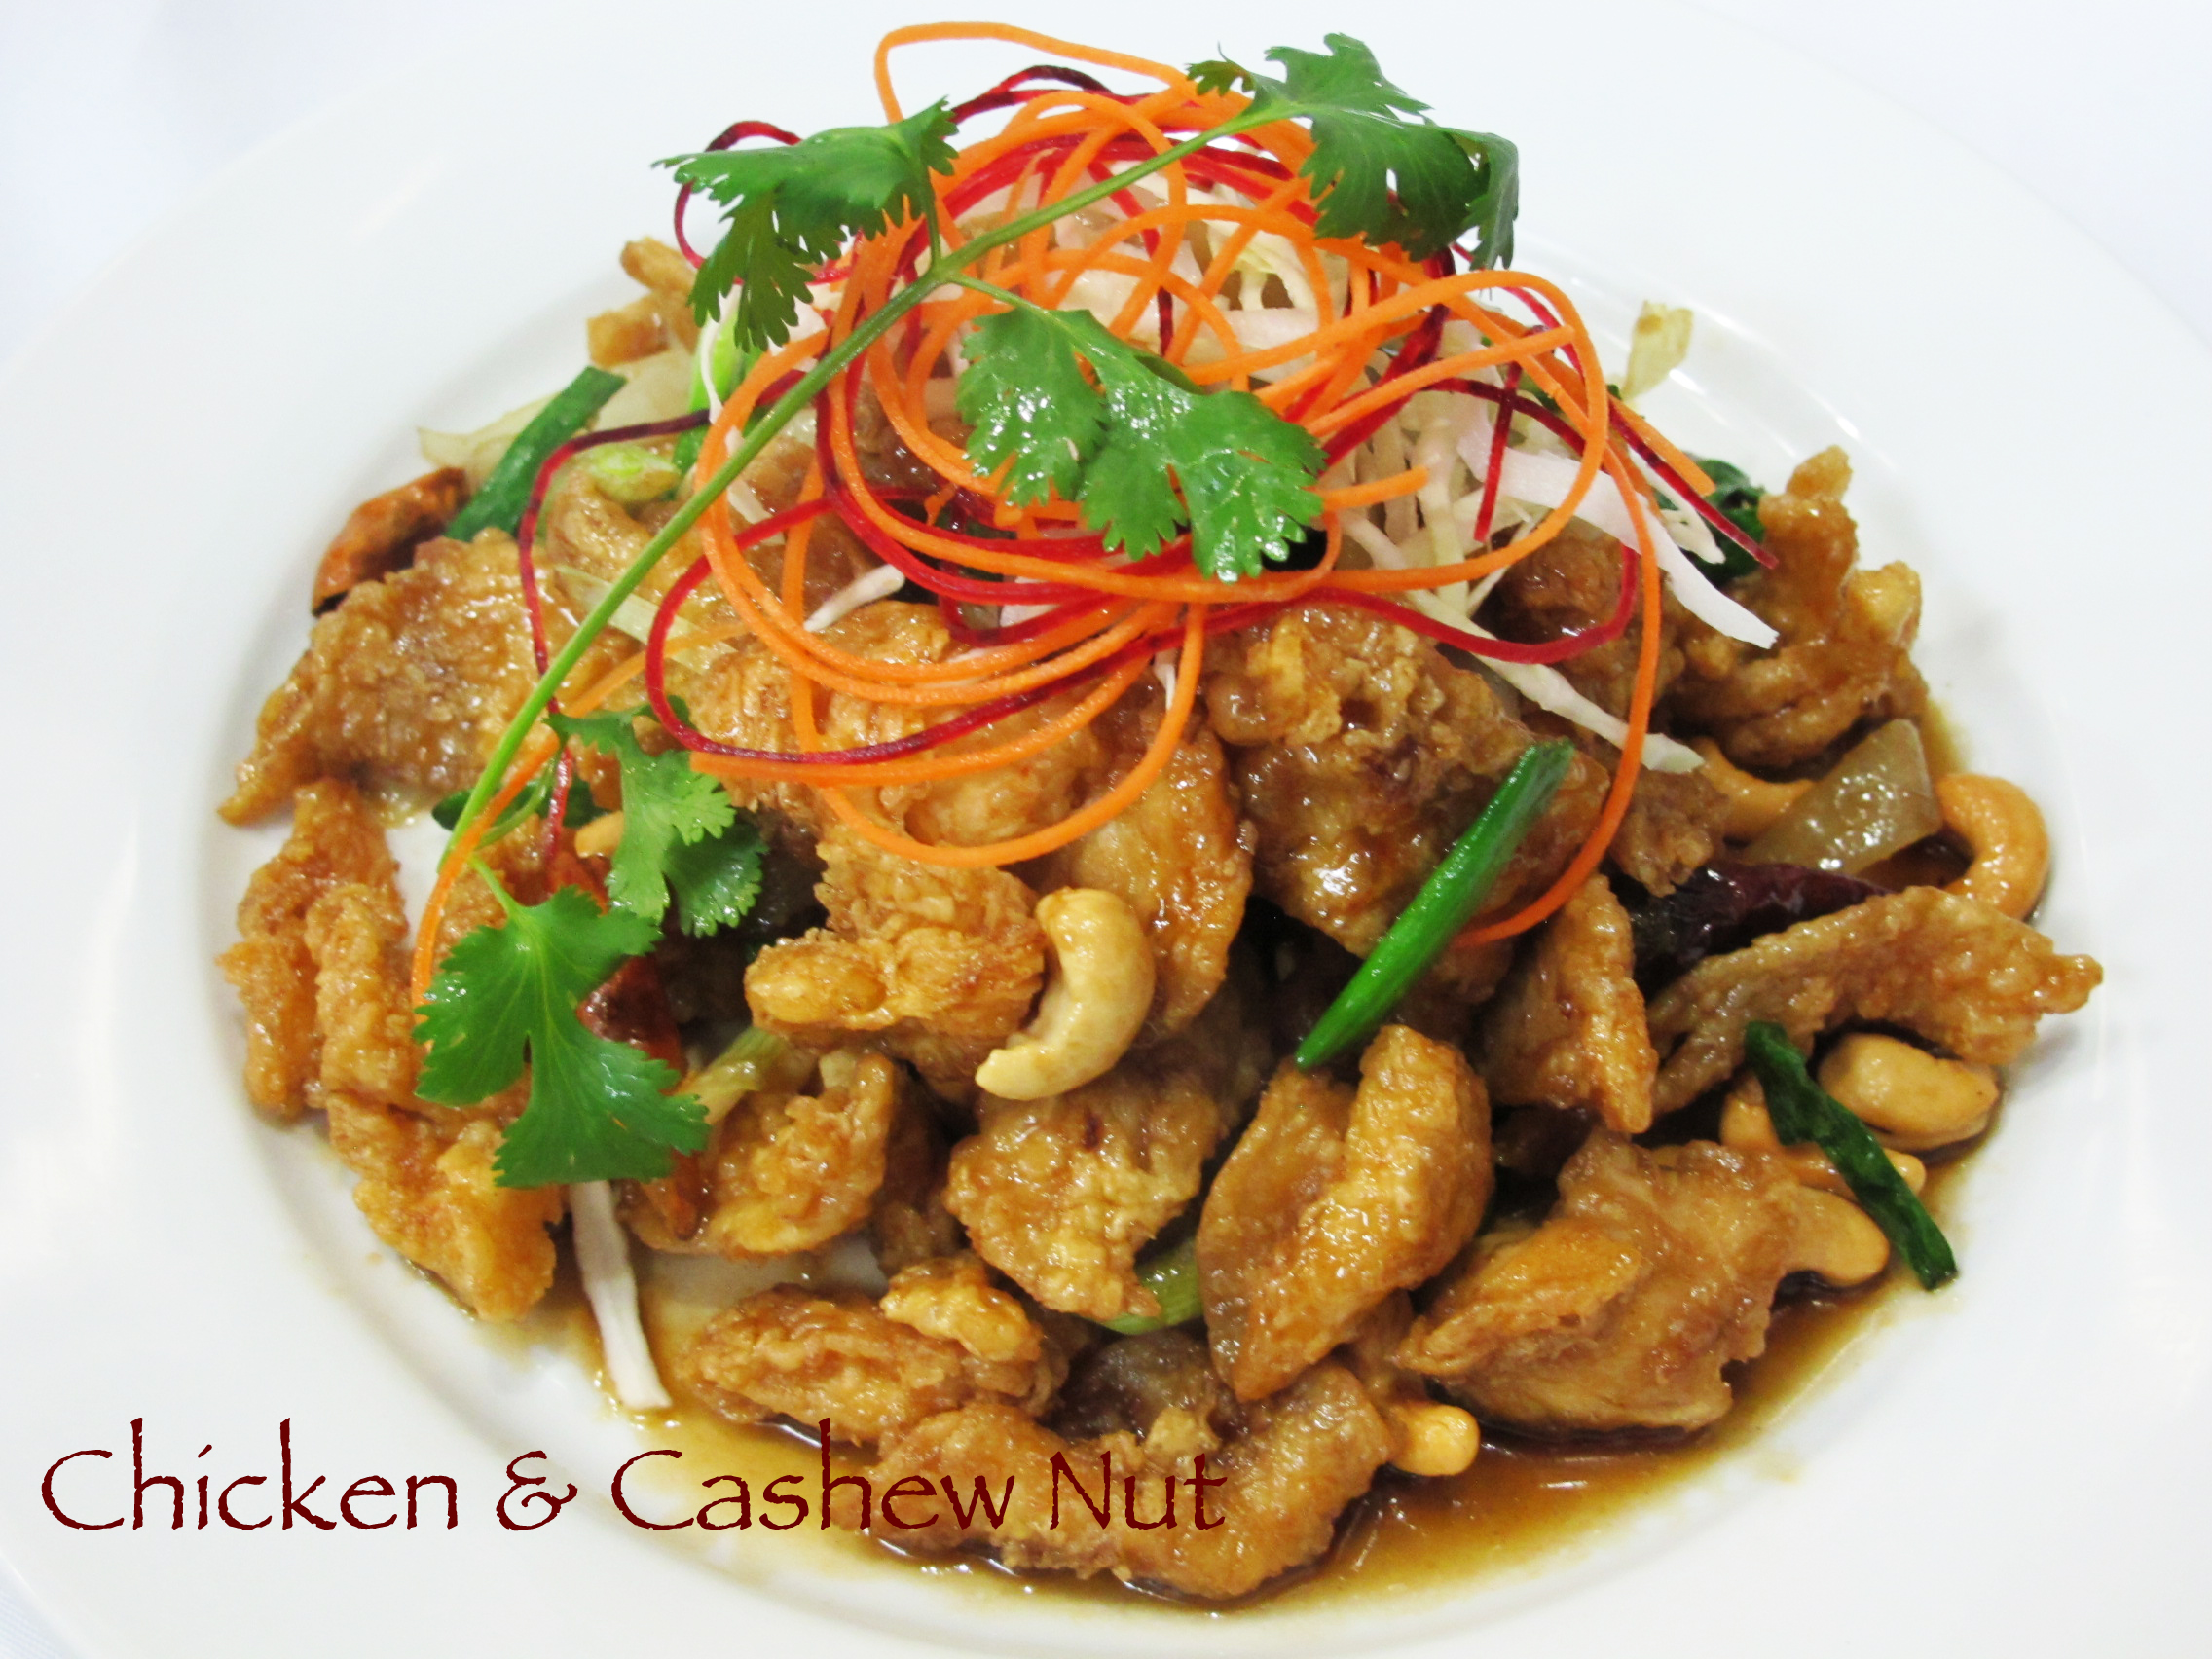 Chicken cashew Nut.jpg